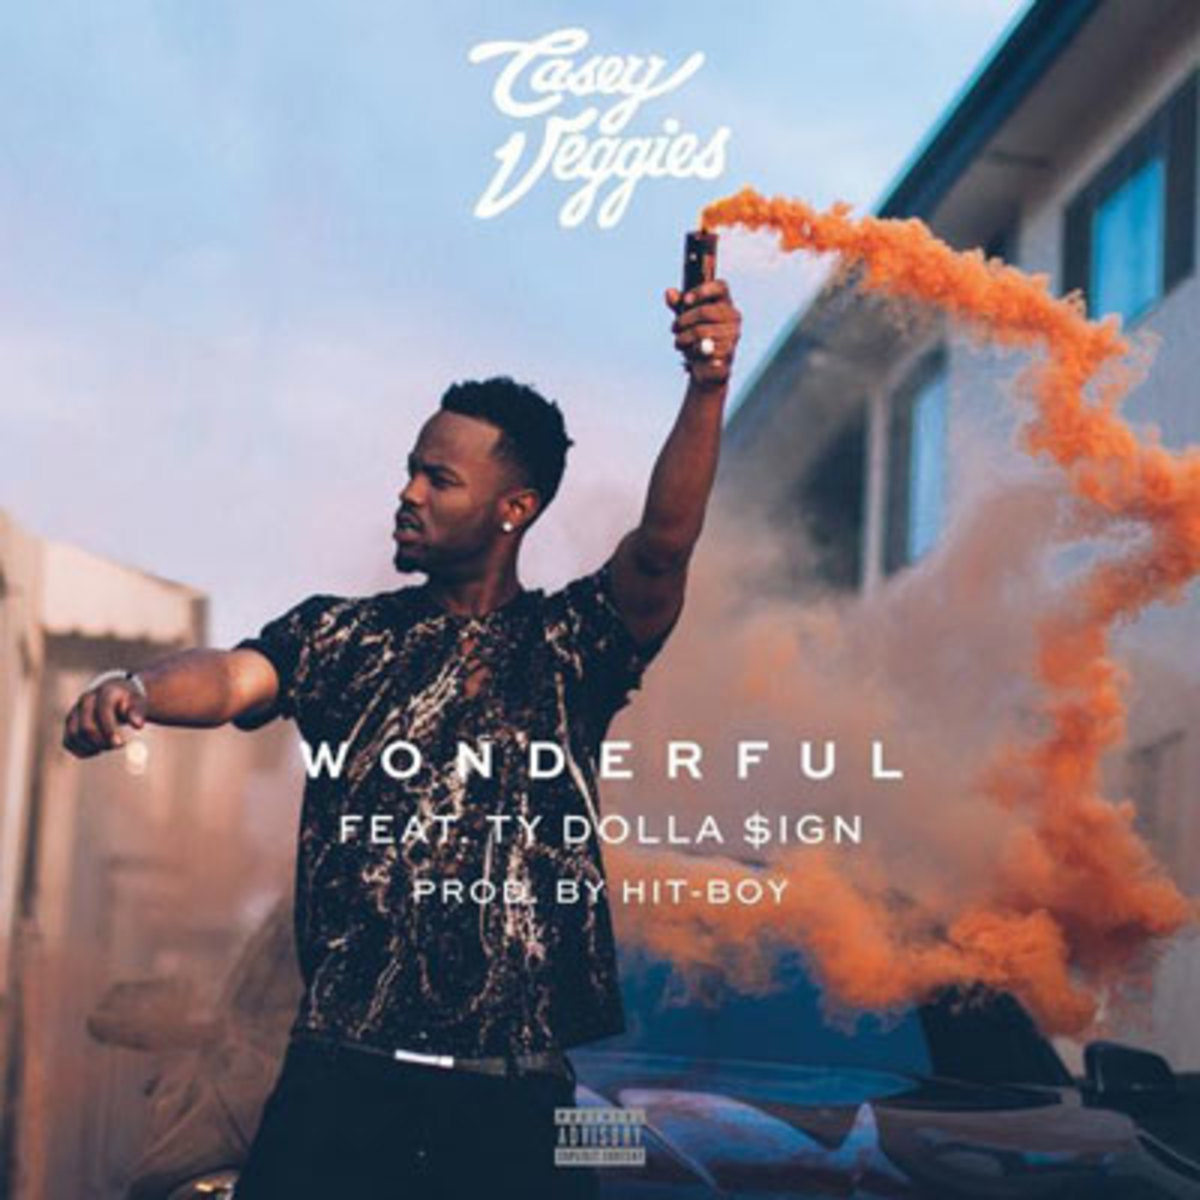 casey-veggies-wonderful.jpg